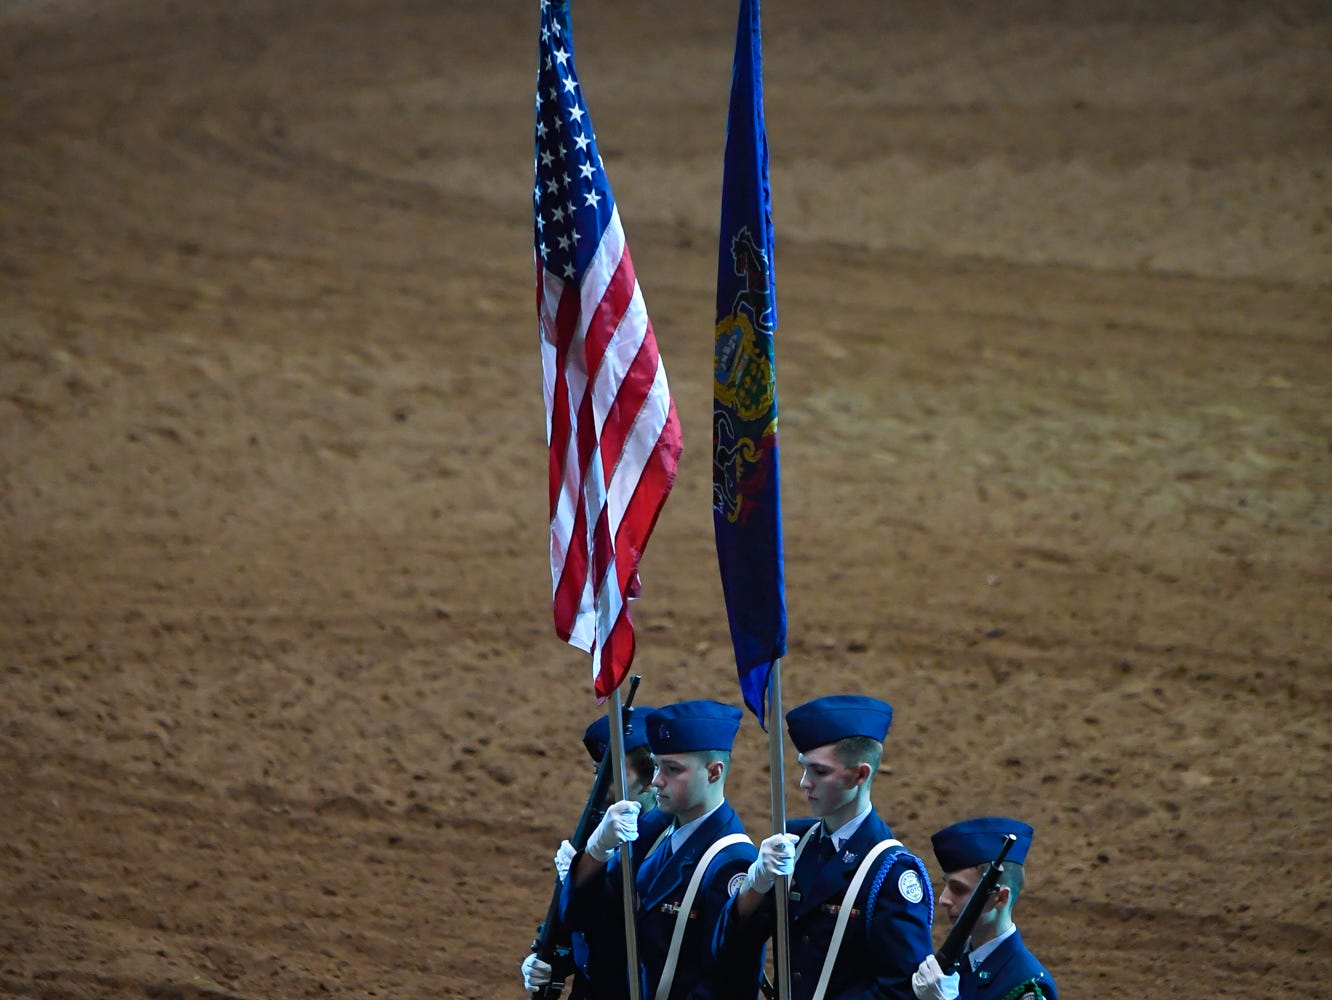 Central York High School Air Force JROTC color guard Alina Arechiga, left, Elijah Perez, Zach Eisenhart and Michael Sandacz, right, march out of the arena following the National Anthem on the first night of the PRCA First Frontier Circuit Finals Rodeo at the 103rd PA Farm Show, Thursday, January 10, 2019.